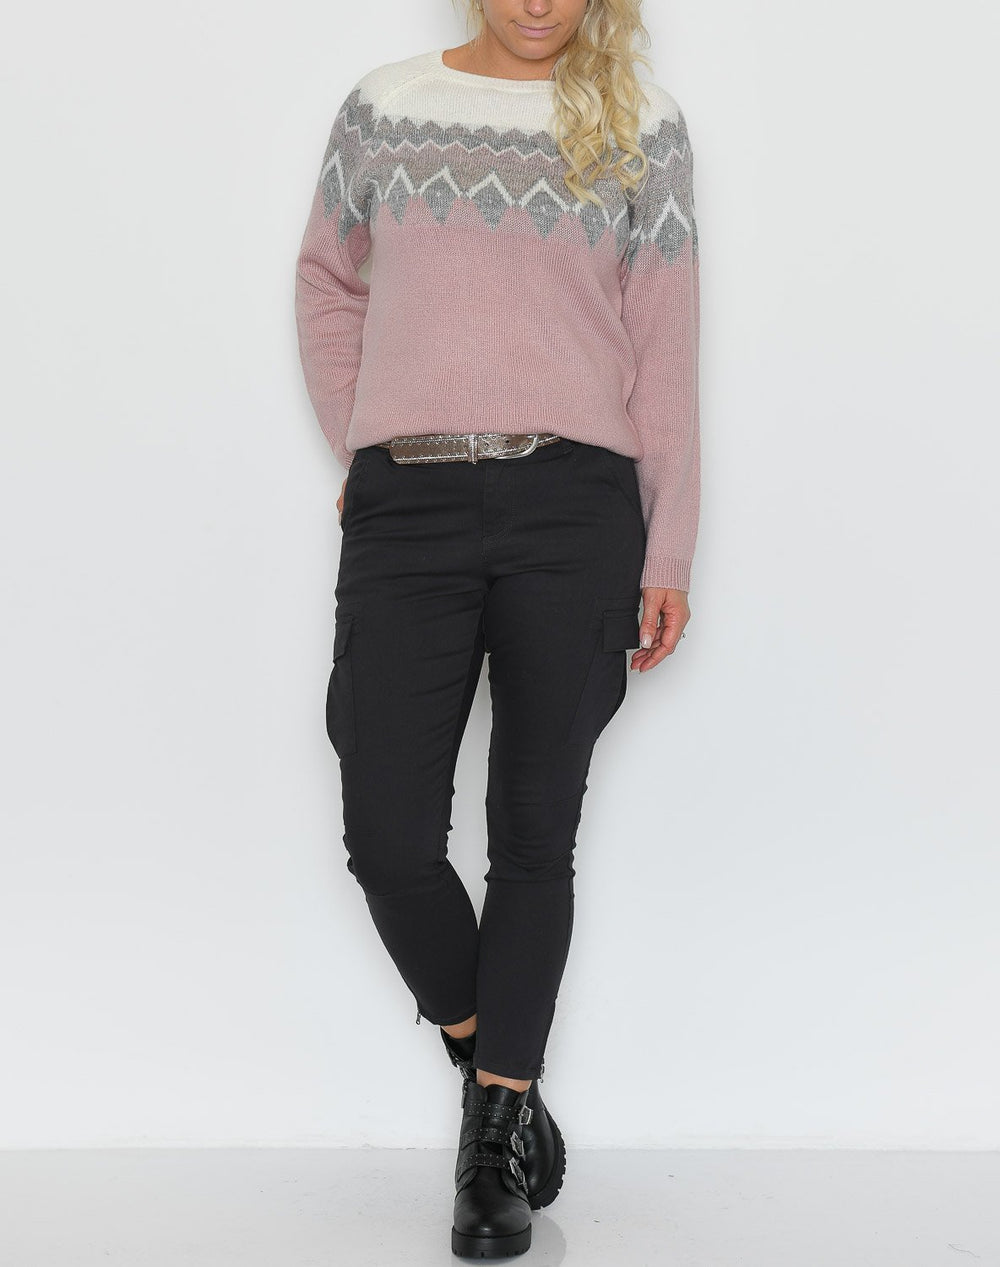 Kaffe KAmandy cropped pants asphalt grey - Online-Mode